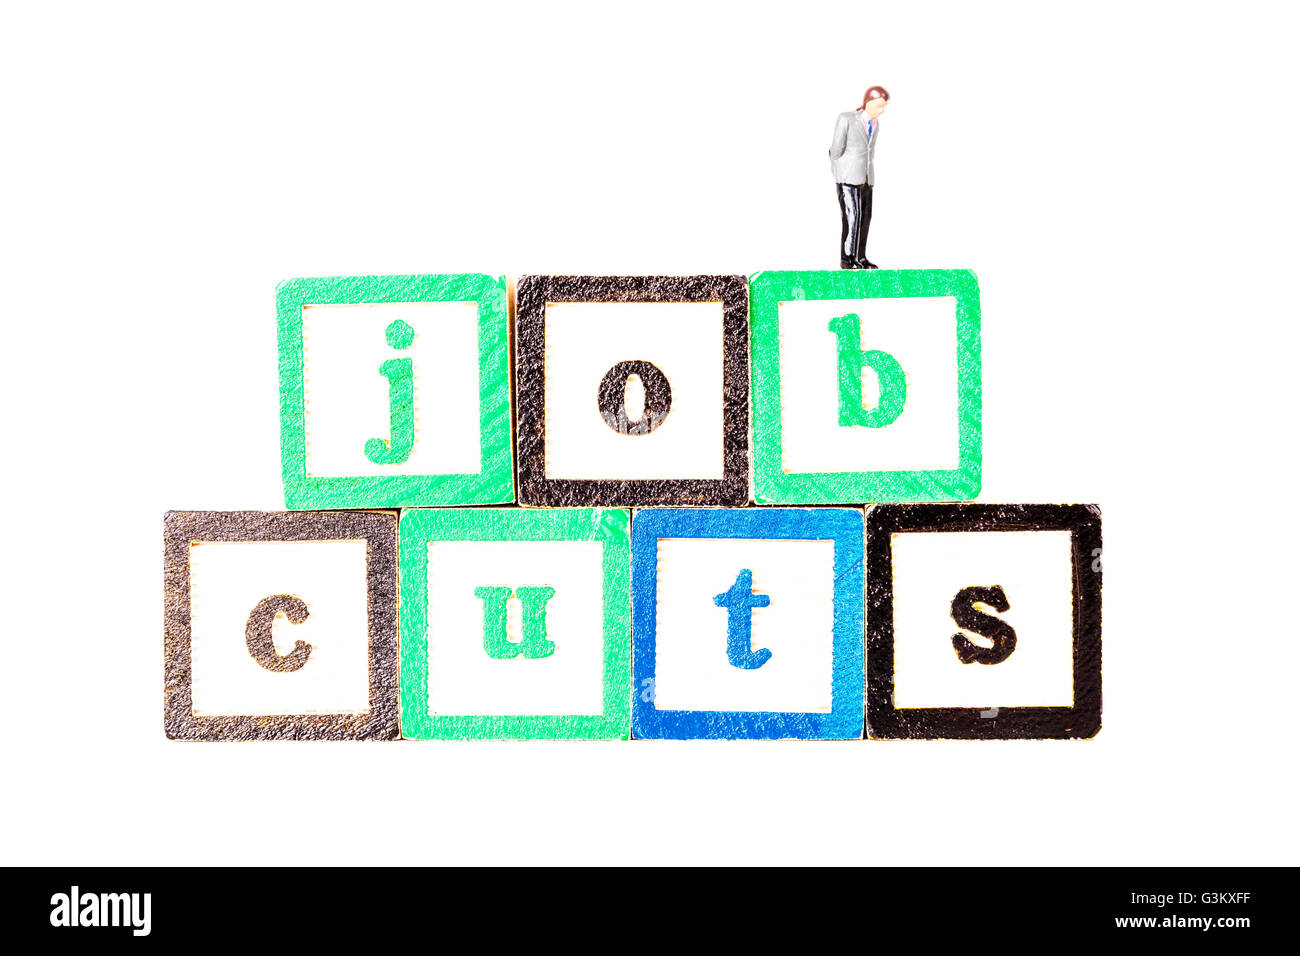 job cuts redundancies redundancy cut backs work loss workers losing employment Cutout cut out white background isolated - Stock Image